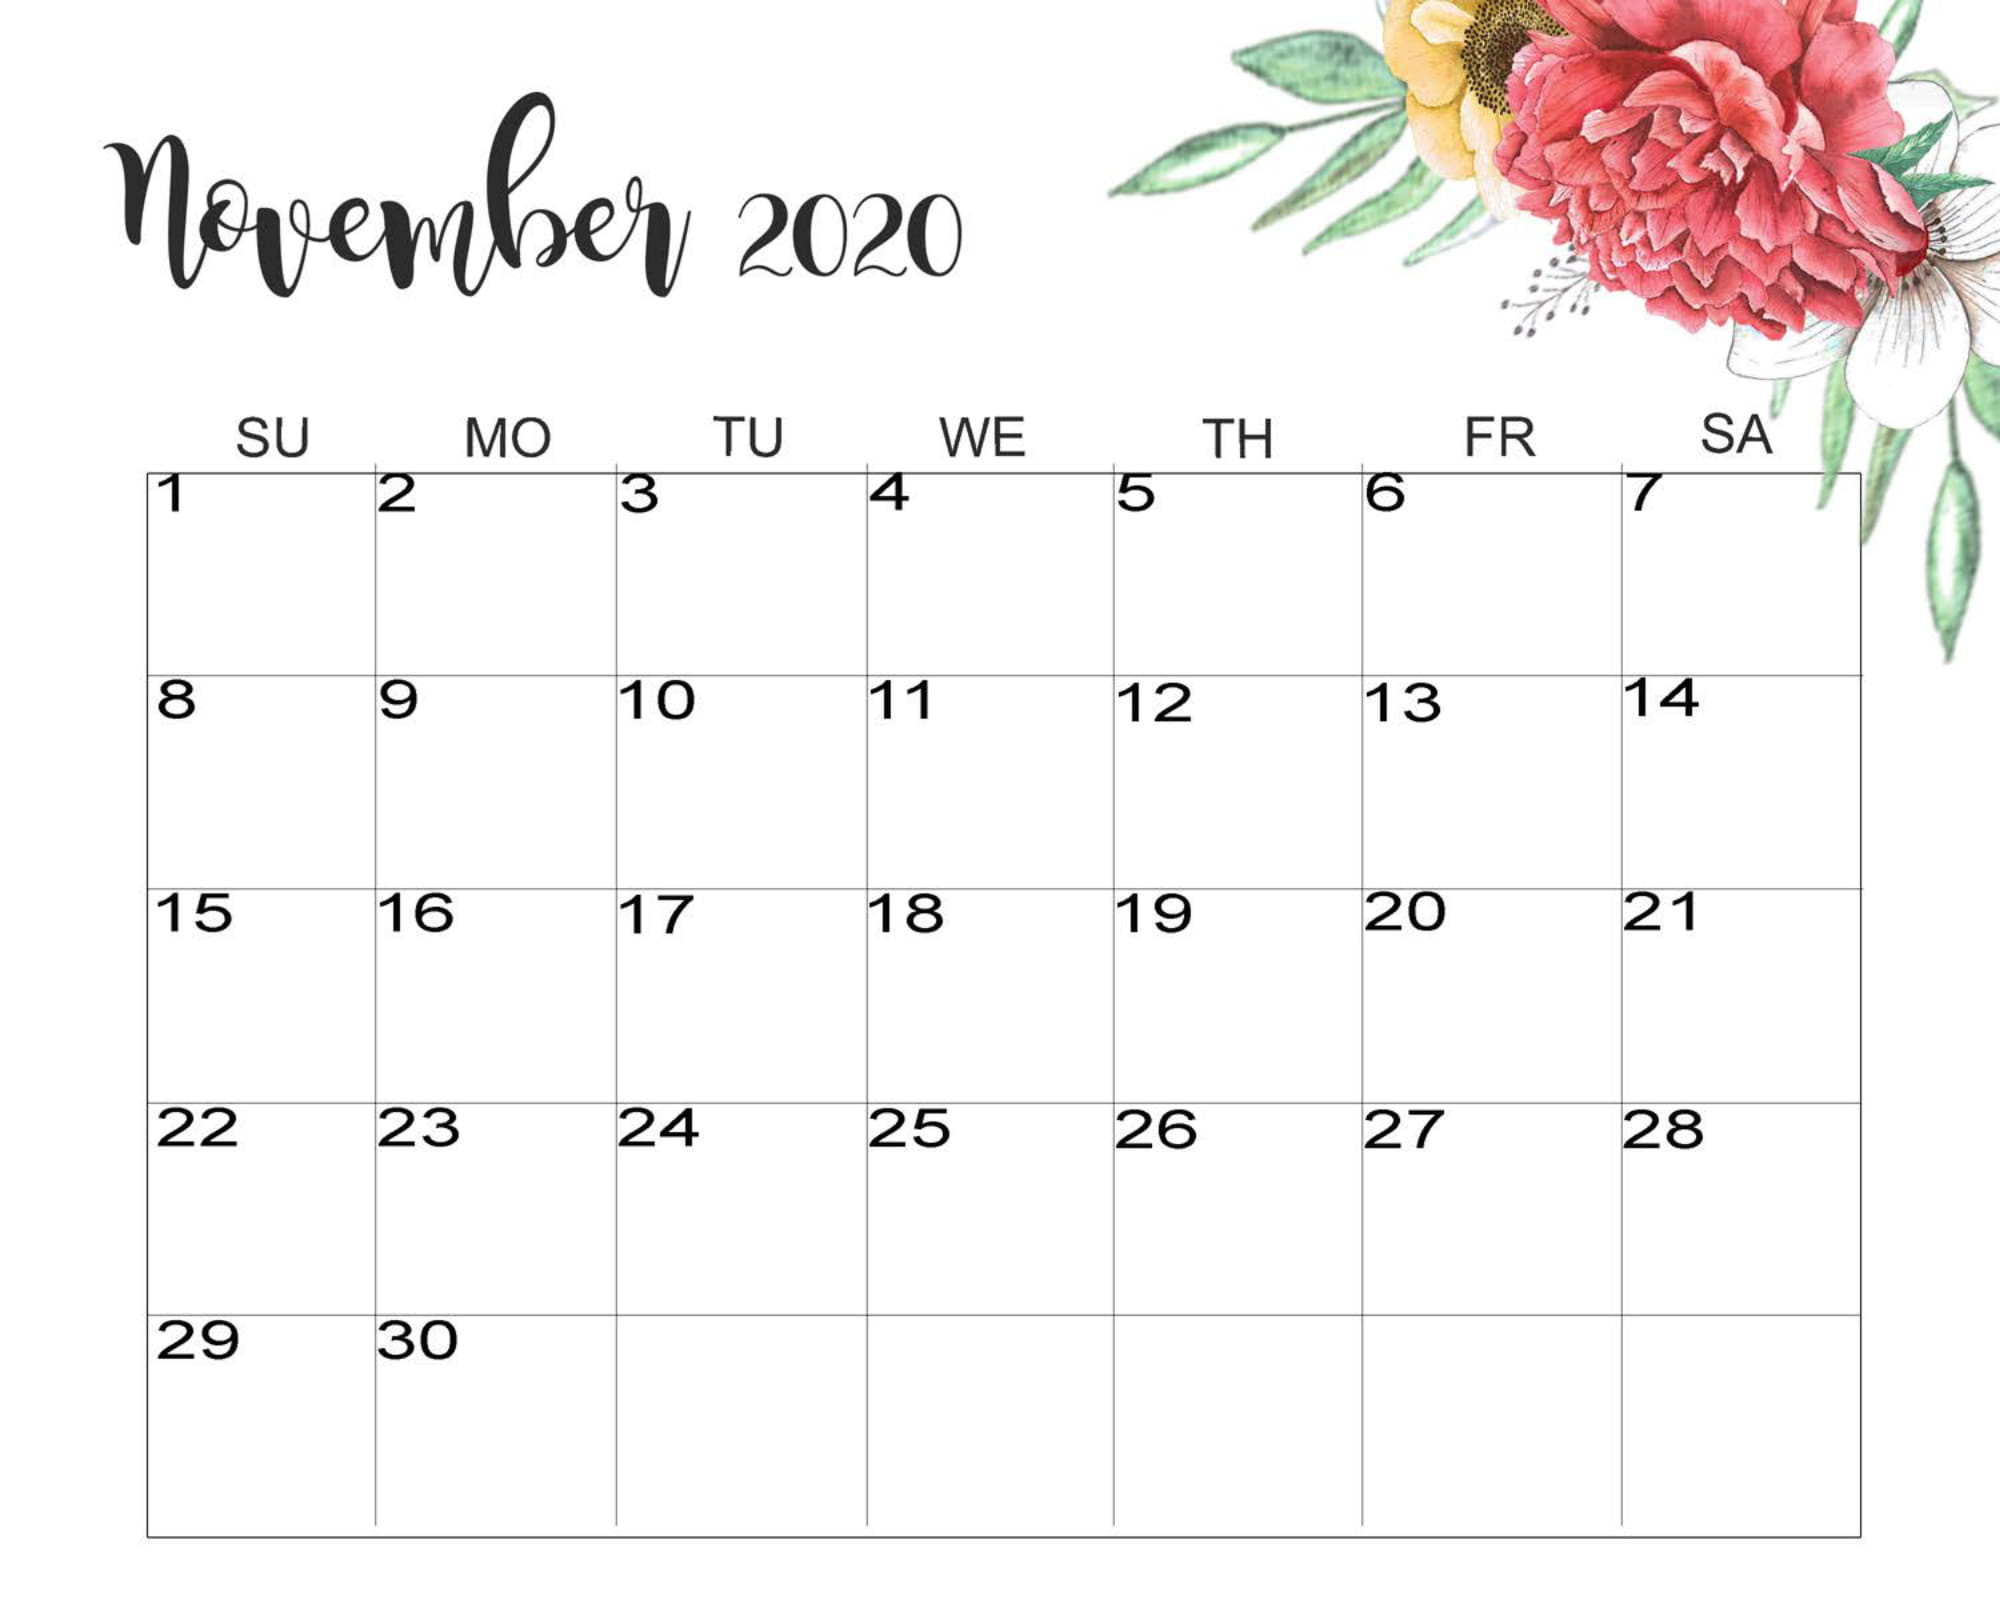 Floral November 2020 Calendar Cute - Latest Calendar ...